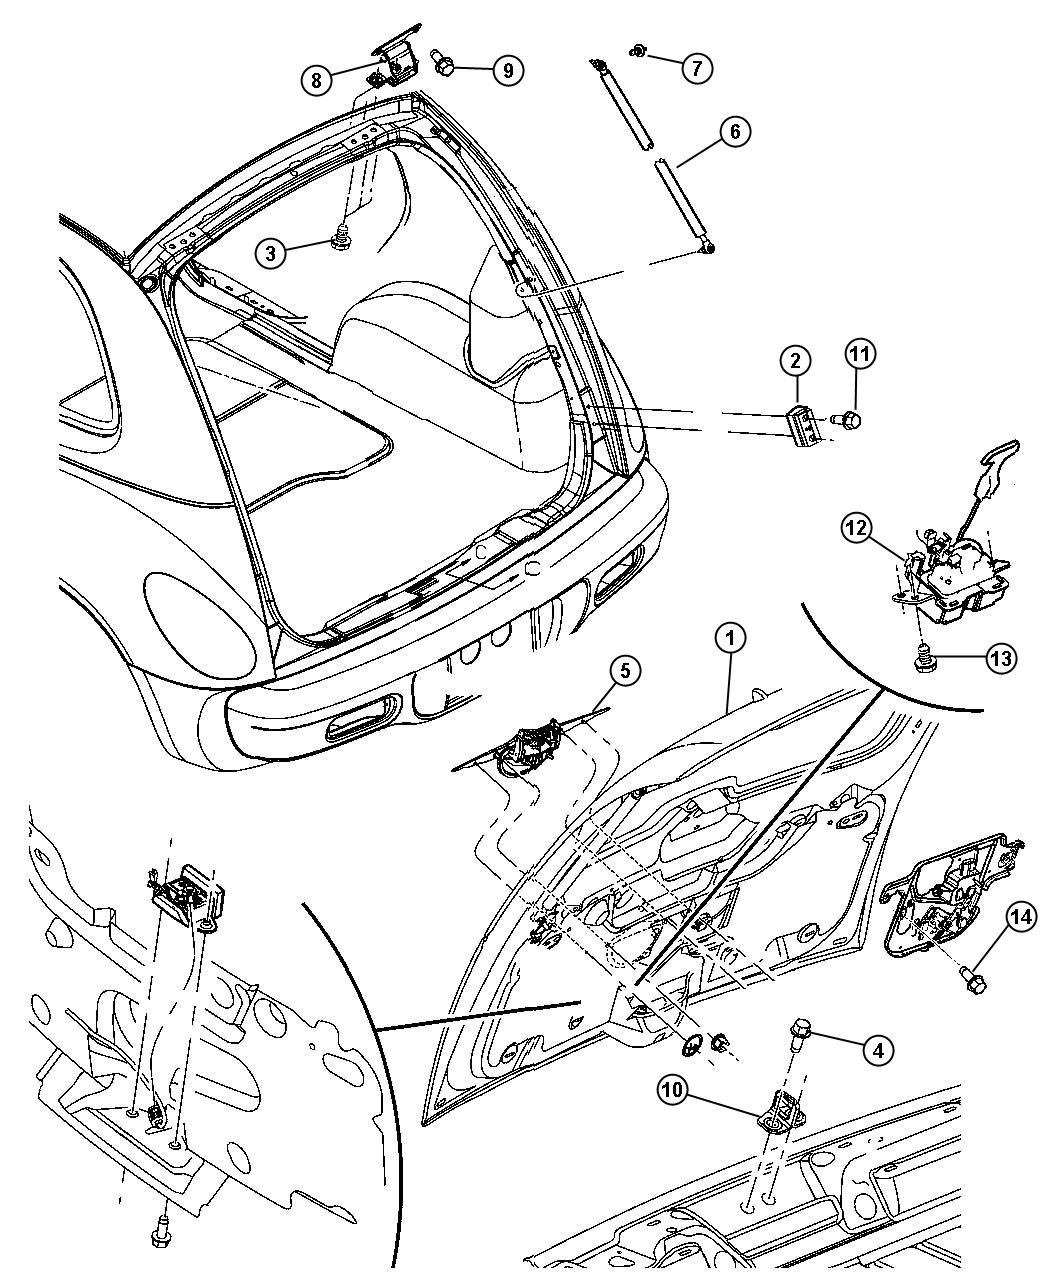 pt cruiser front suspension diagram toyota tacoma stereo wiring harness chrysler bumper parts